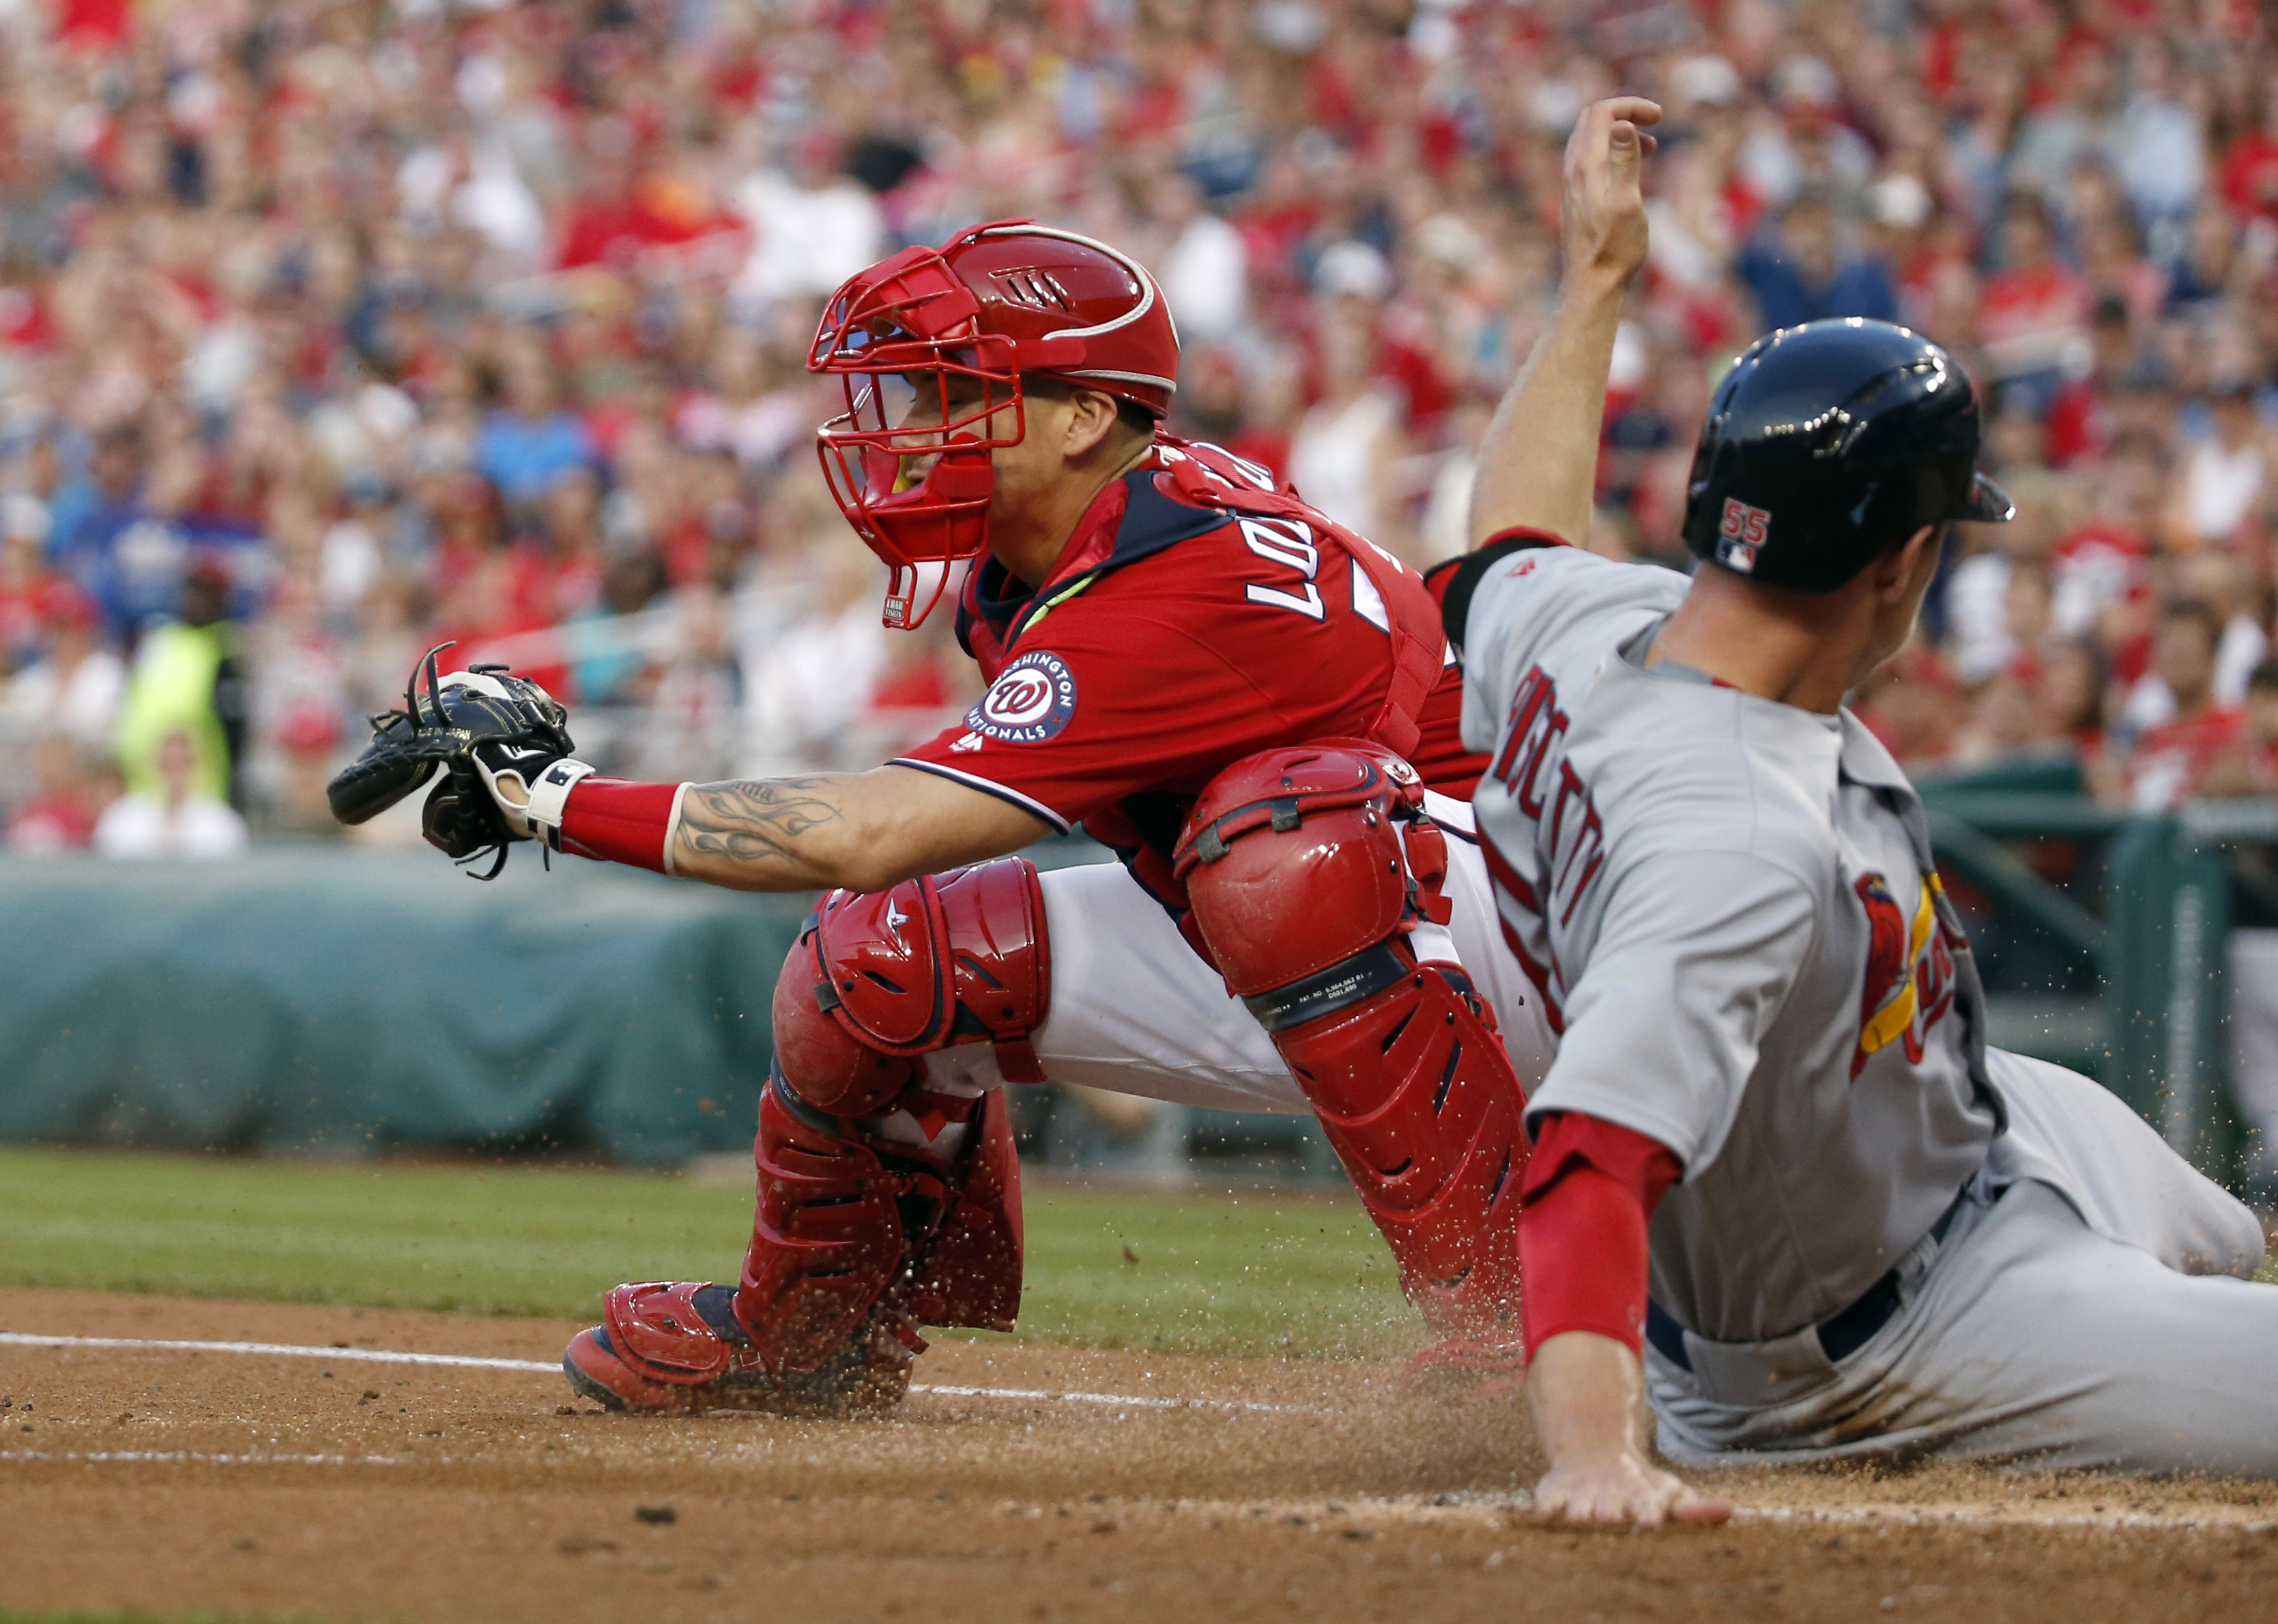 St. Louis Cardinals' Stephen Piscotty, right, slides safely into home as Washington Nationals catcher Jose Lobaton cannot make the tag in time after a single by Cardinals' Greg Garcia during the second inning of a baseball game at Nationals Park, Saturday